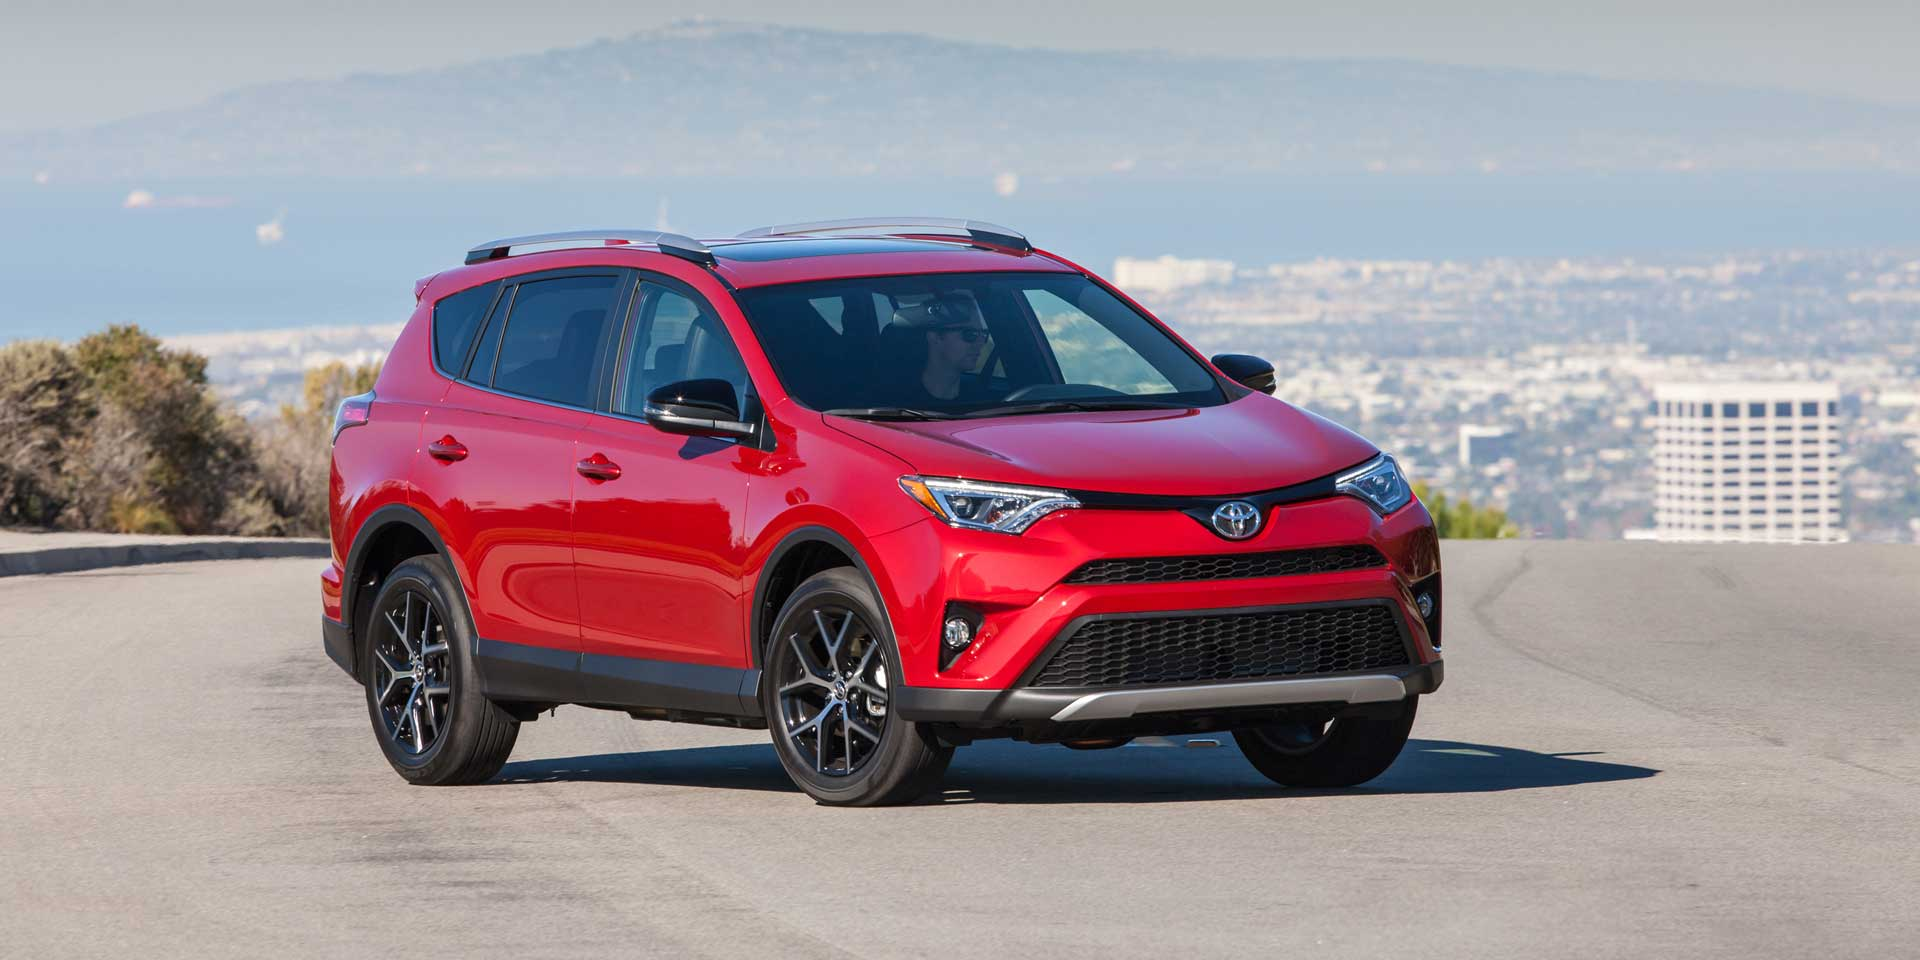 2017 Toyota RAV4: The 2017 Toyota RAV4 Is A Compact Sport Utility  Crossover, And It Gains Two New Trim Levels For 2017. Set To Compete With  The Ford Escape, ...